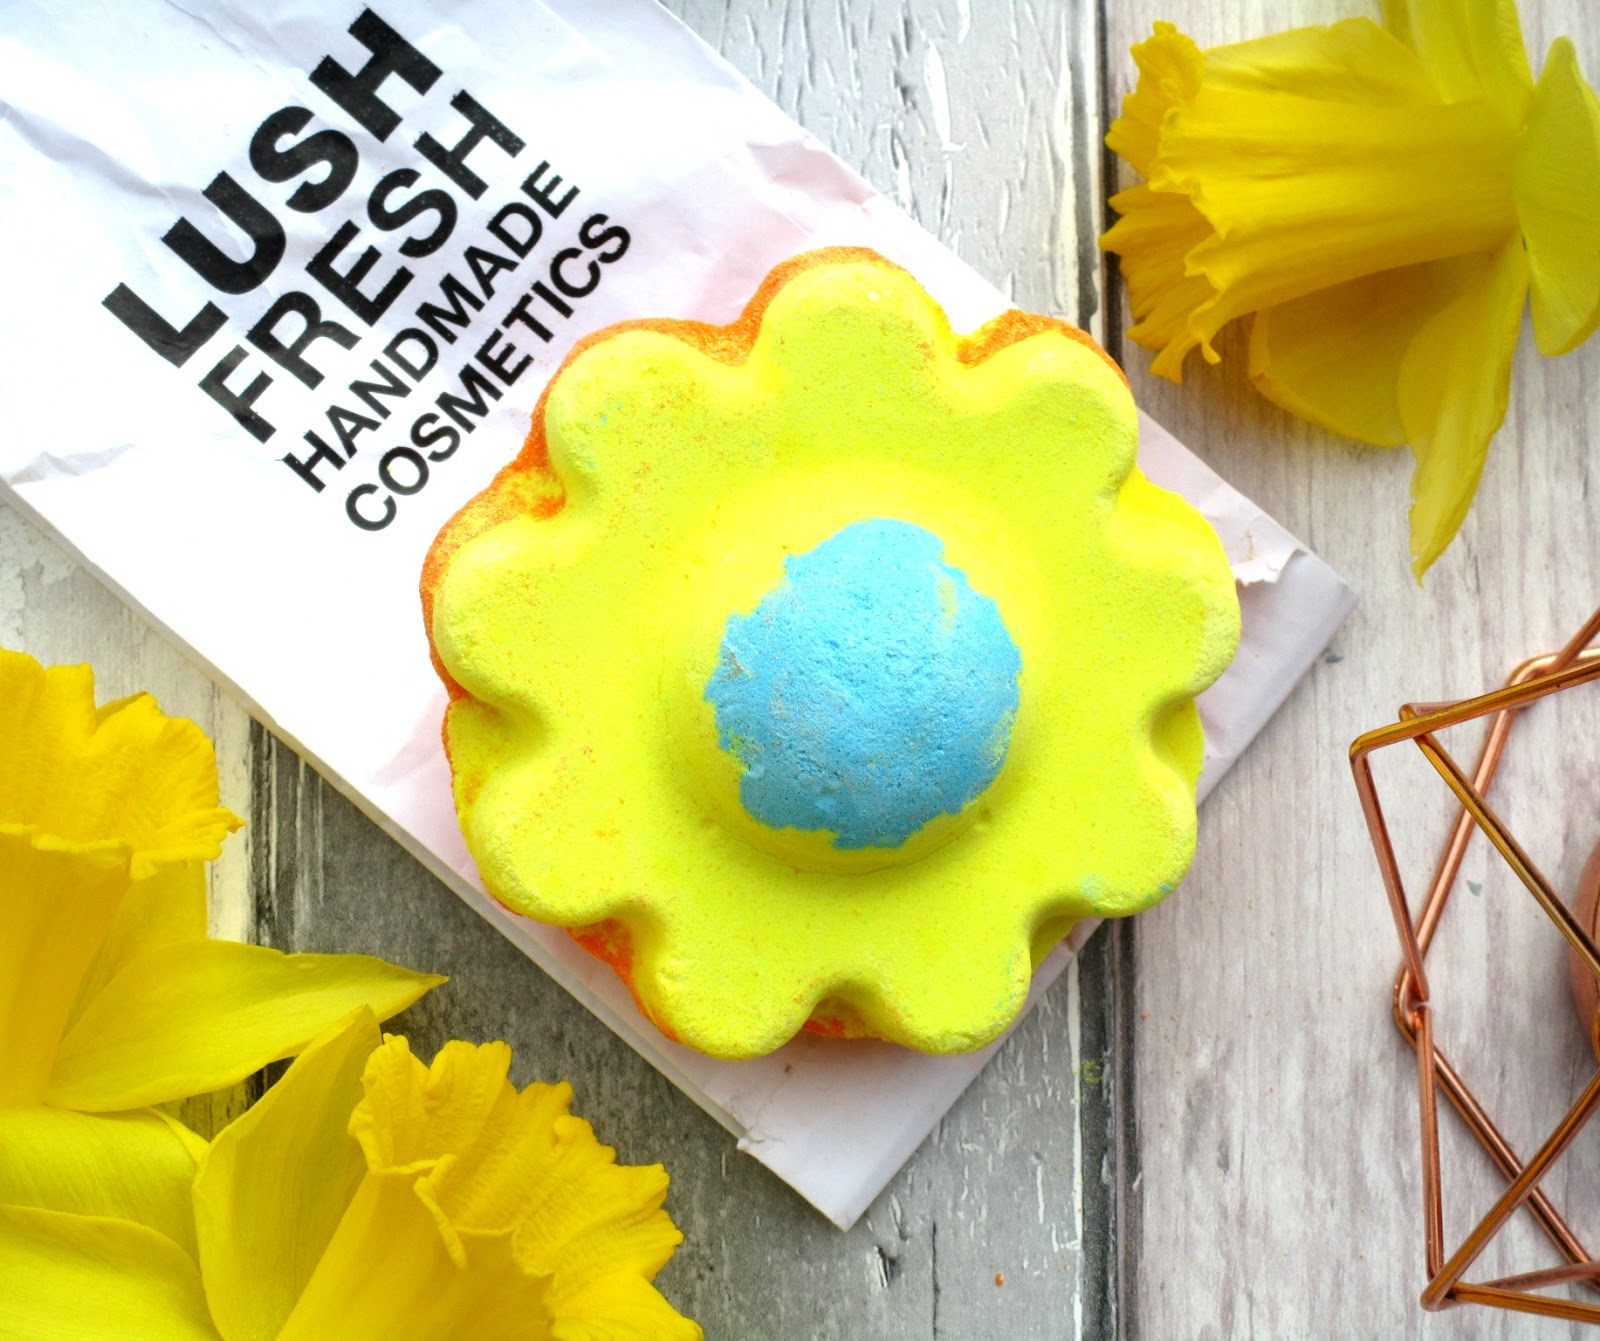 Haysparkle Lush Ups A Daisy Bath Bomb Review